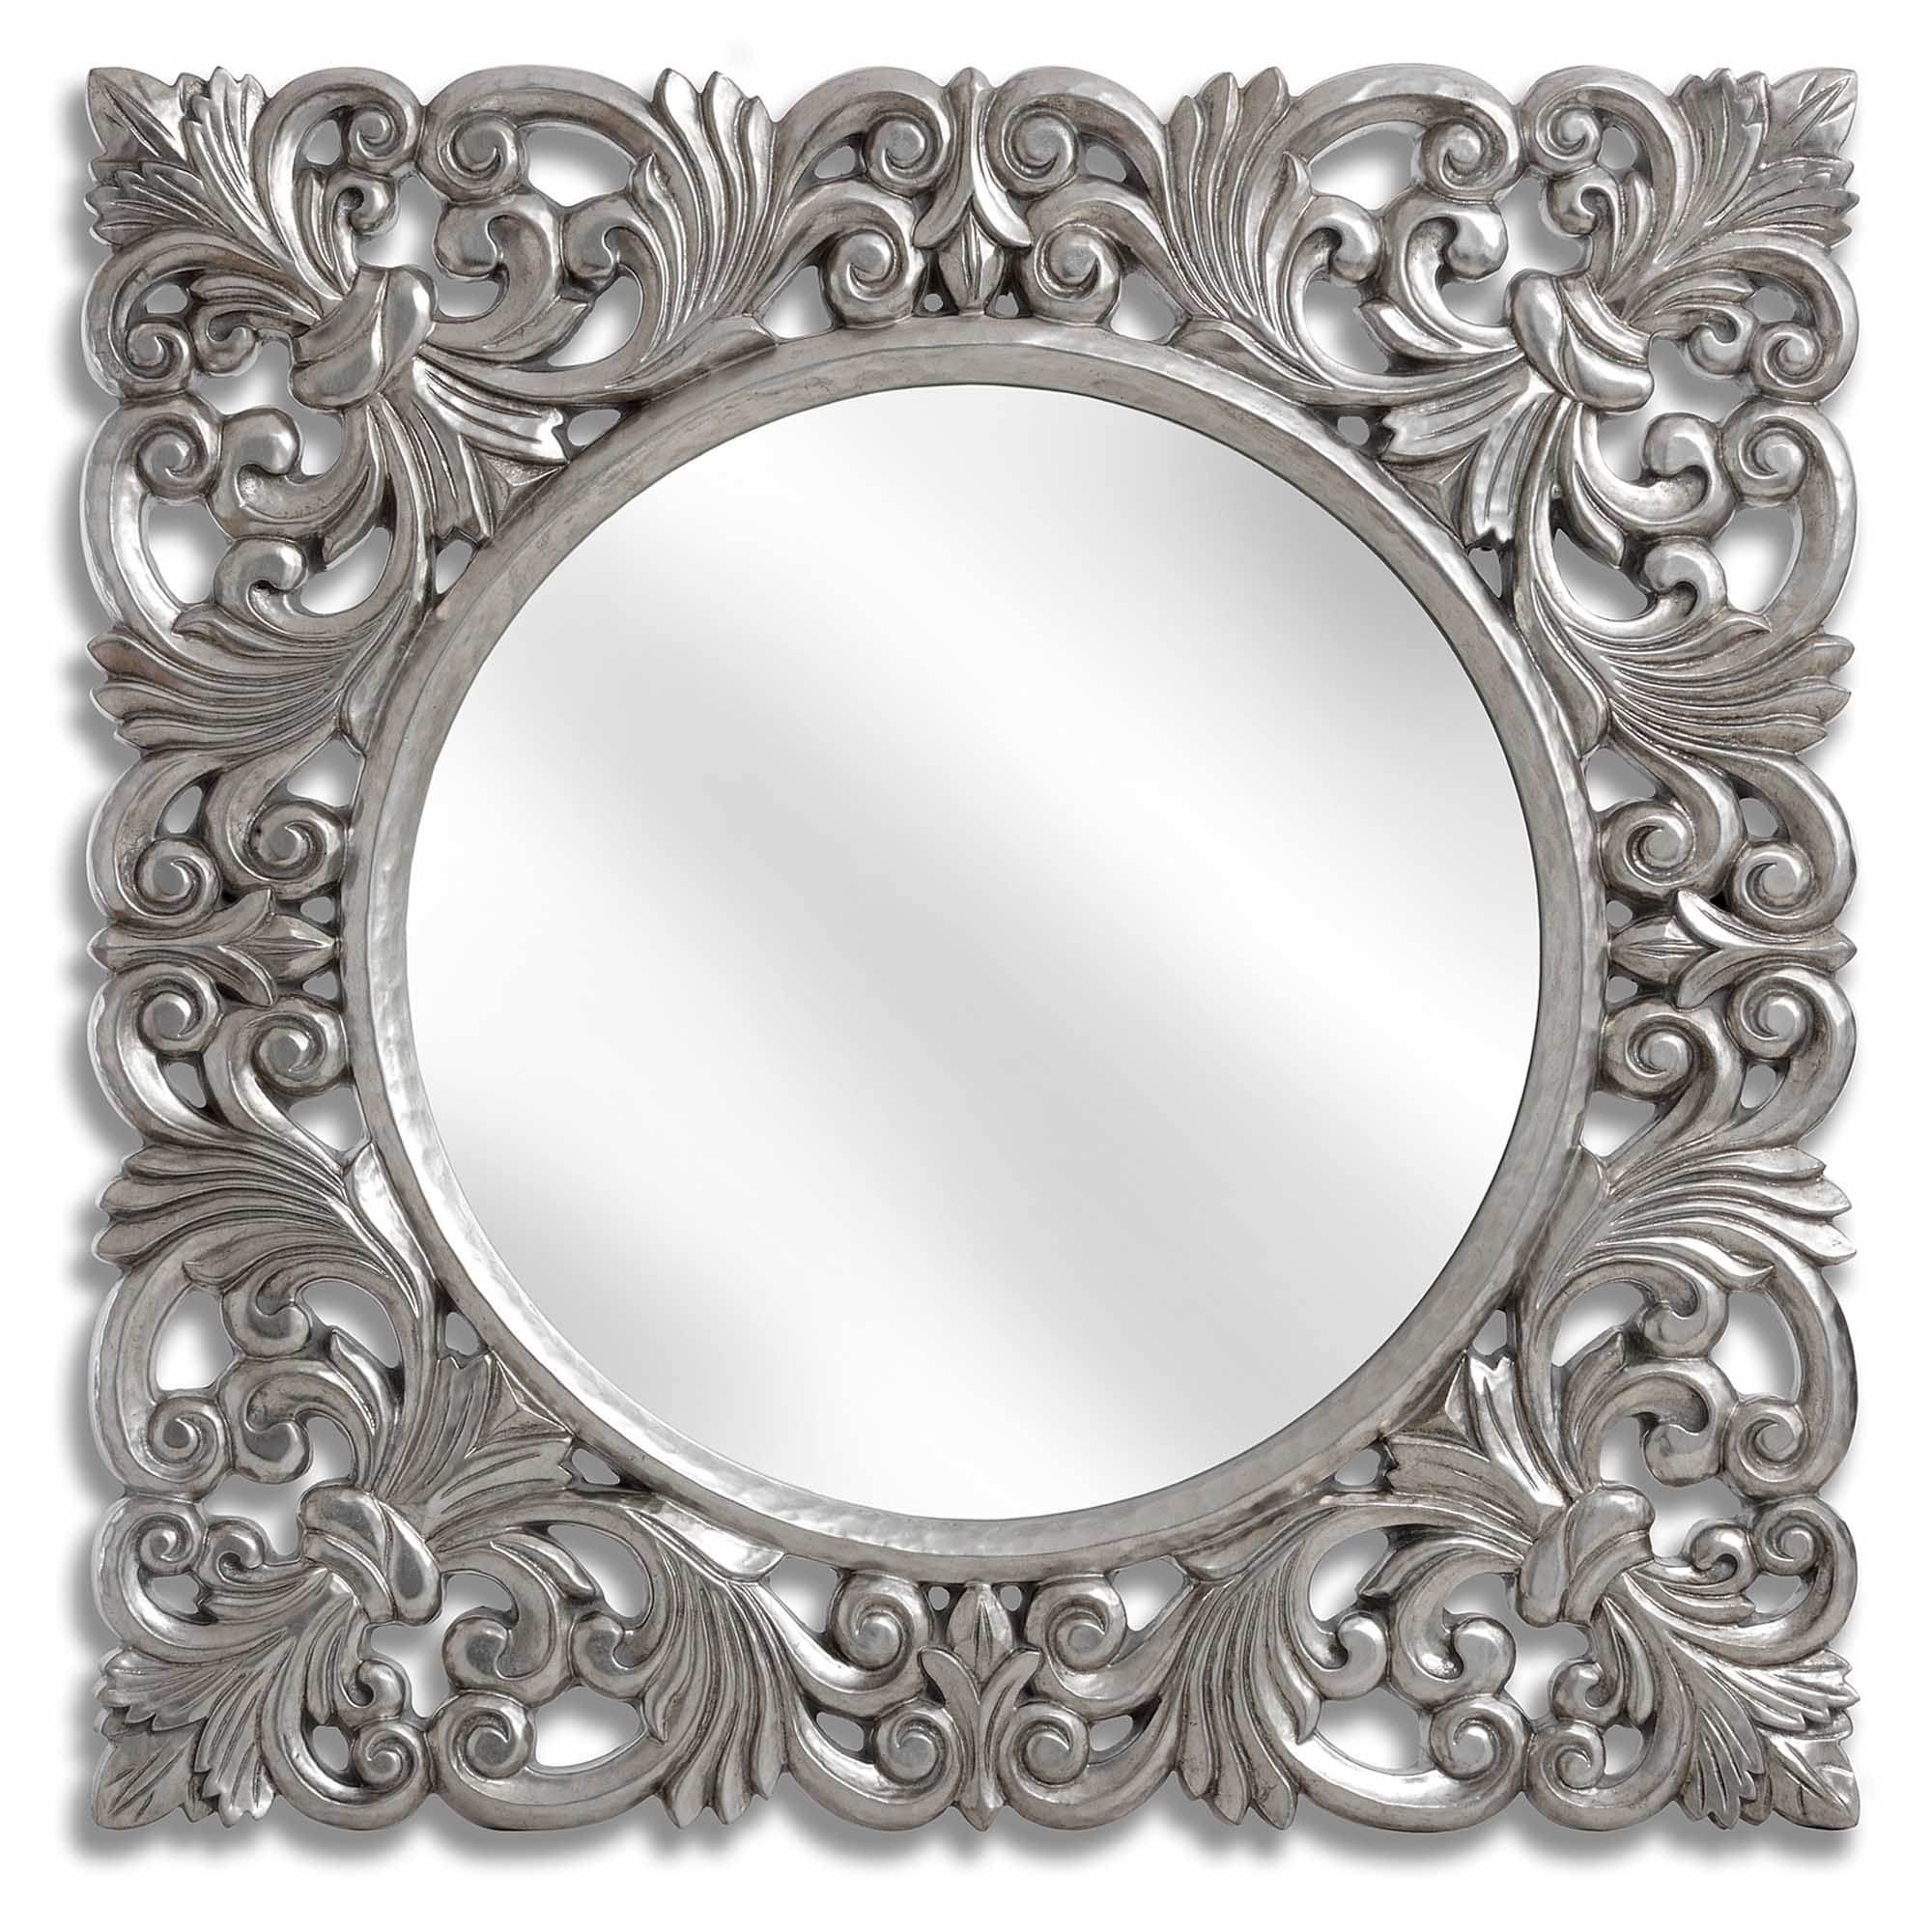 Widely Used Antique Wall Mirrors With Regard To Baroque Antique French Style Silver Wall Mirror (Gallery 4 of 20)